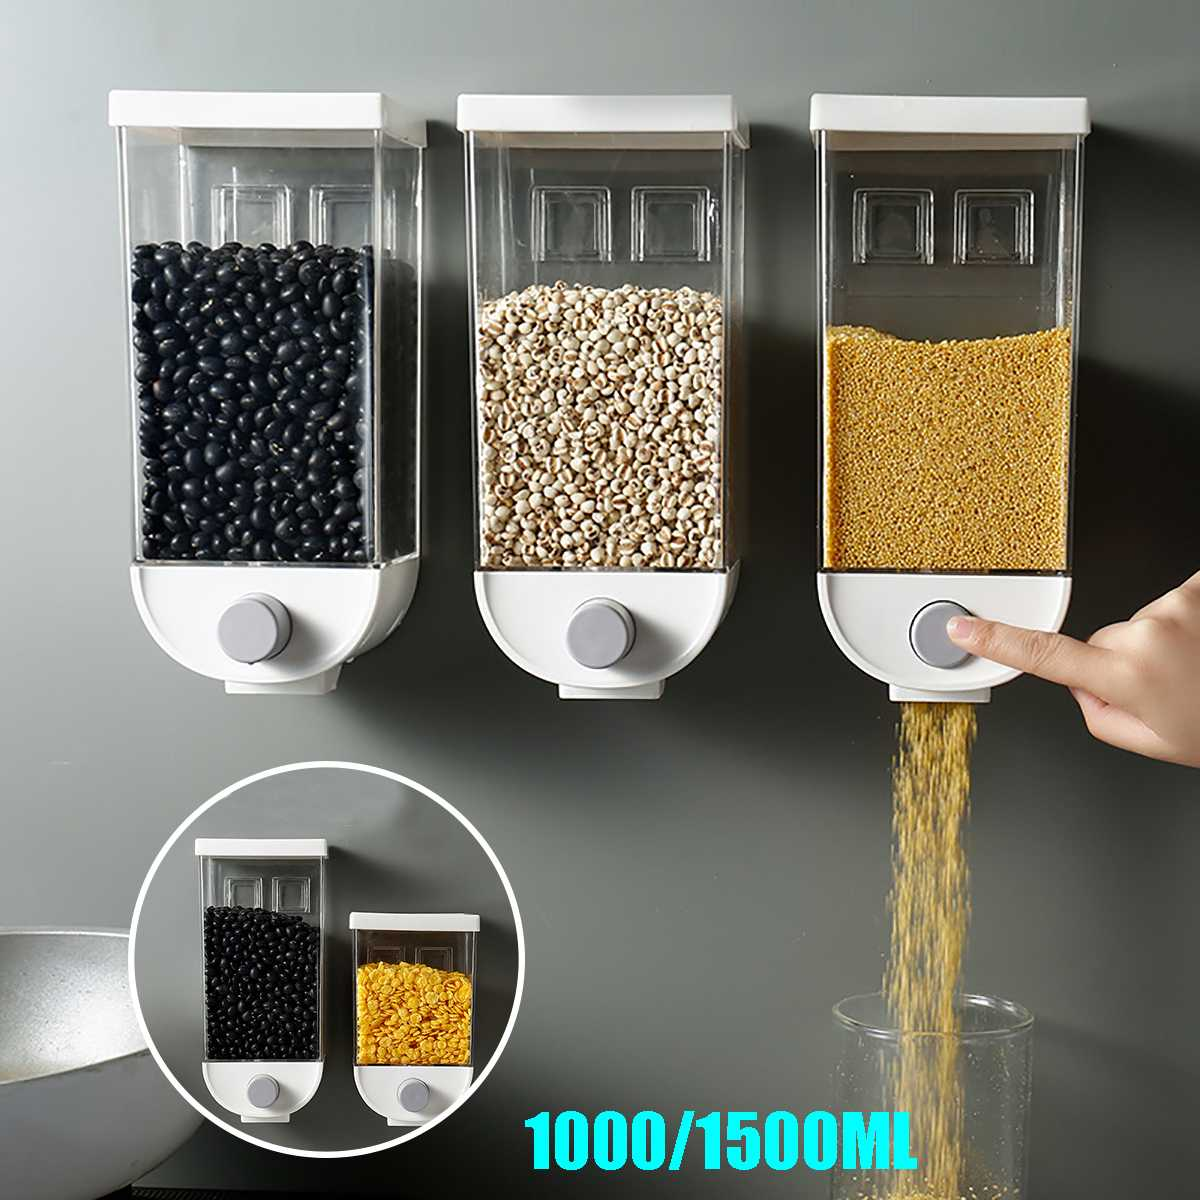 1500ML/1000ML Kitchen Wall-mounted Oatmeal Cereal Storage Box Dispenser Sealed Food Storage Container Snack Storage Tank Grain